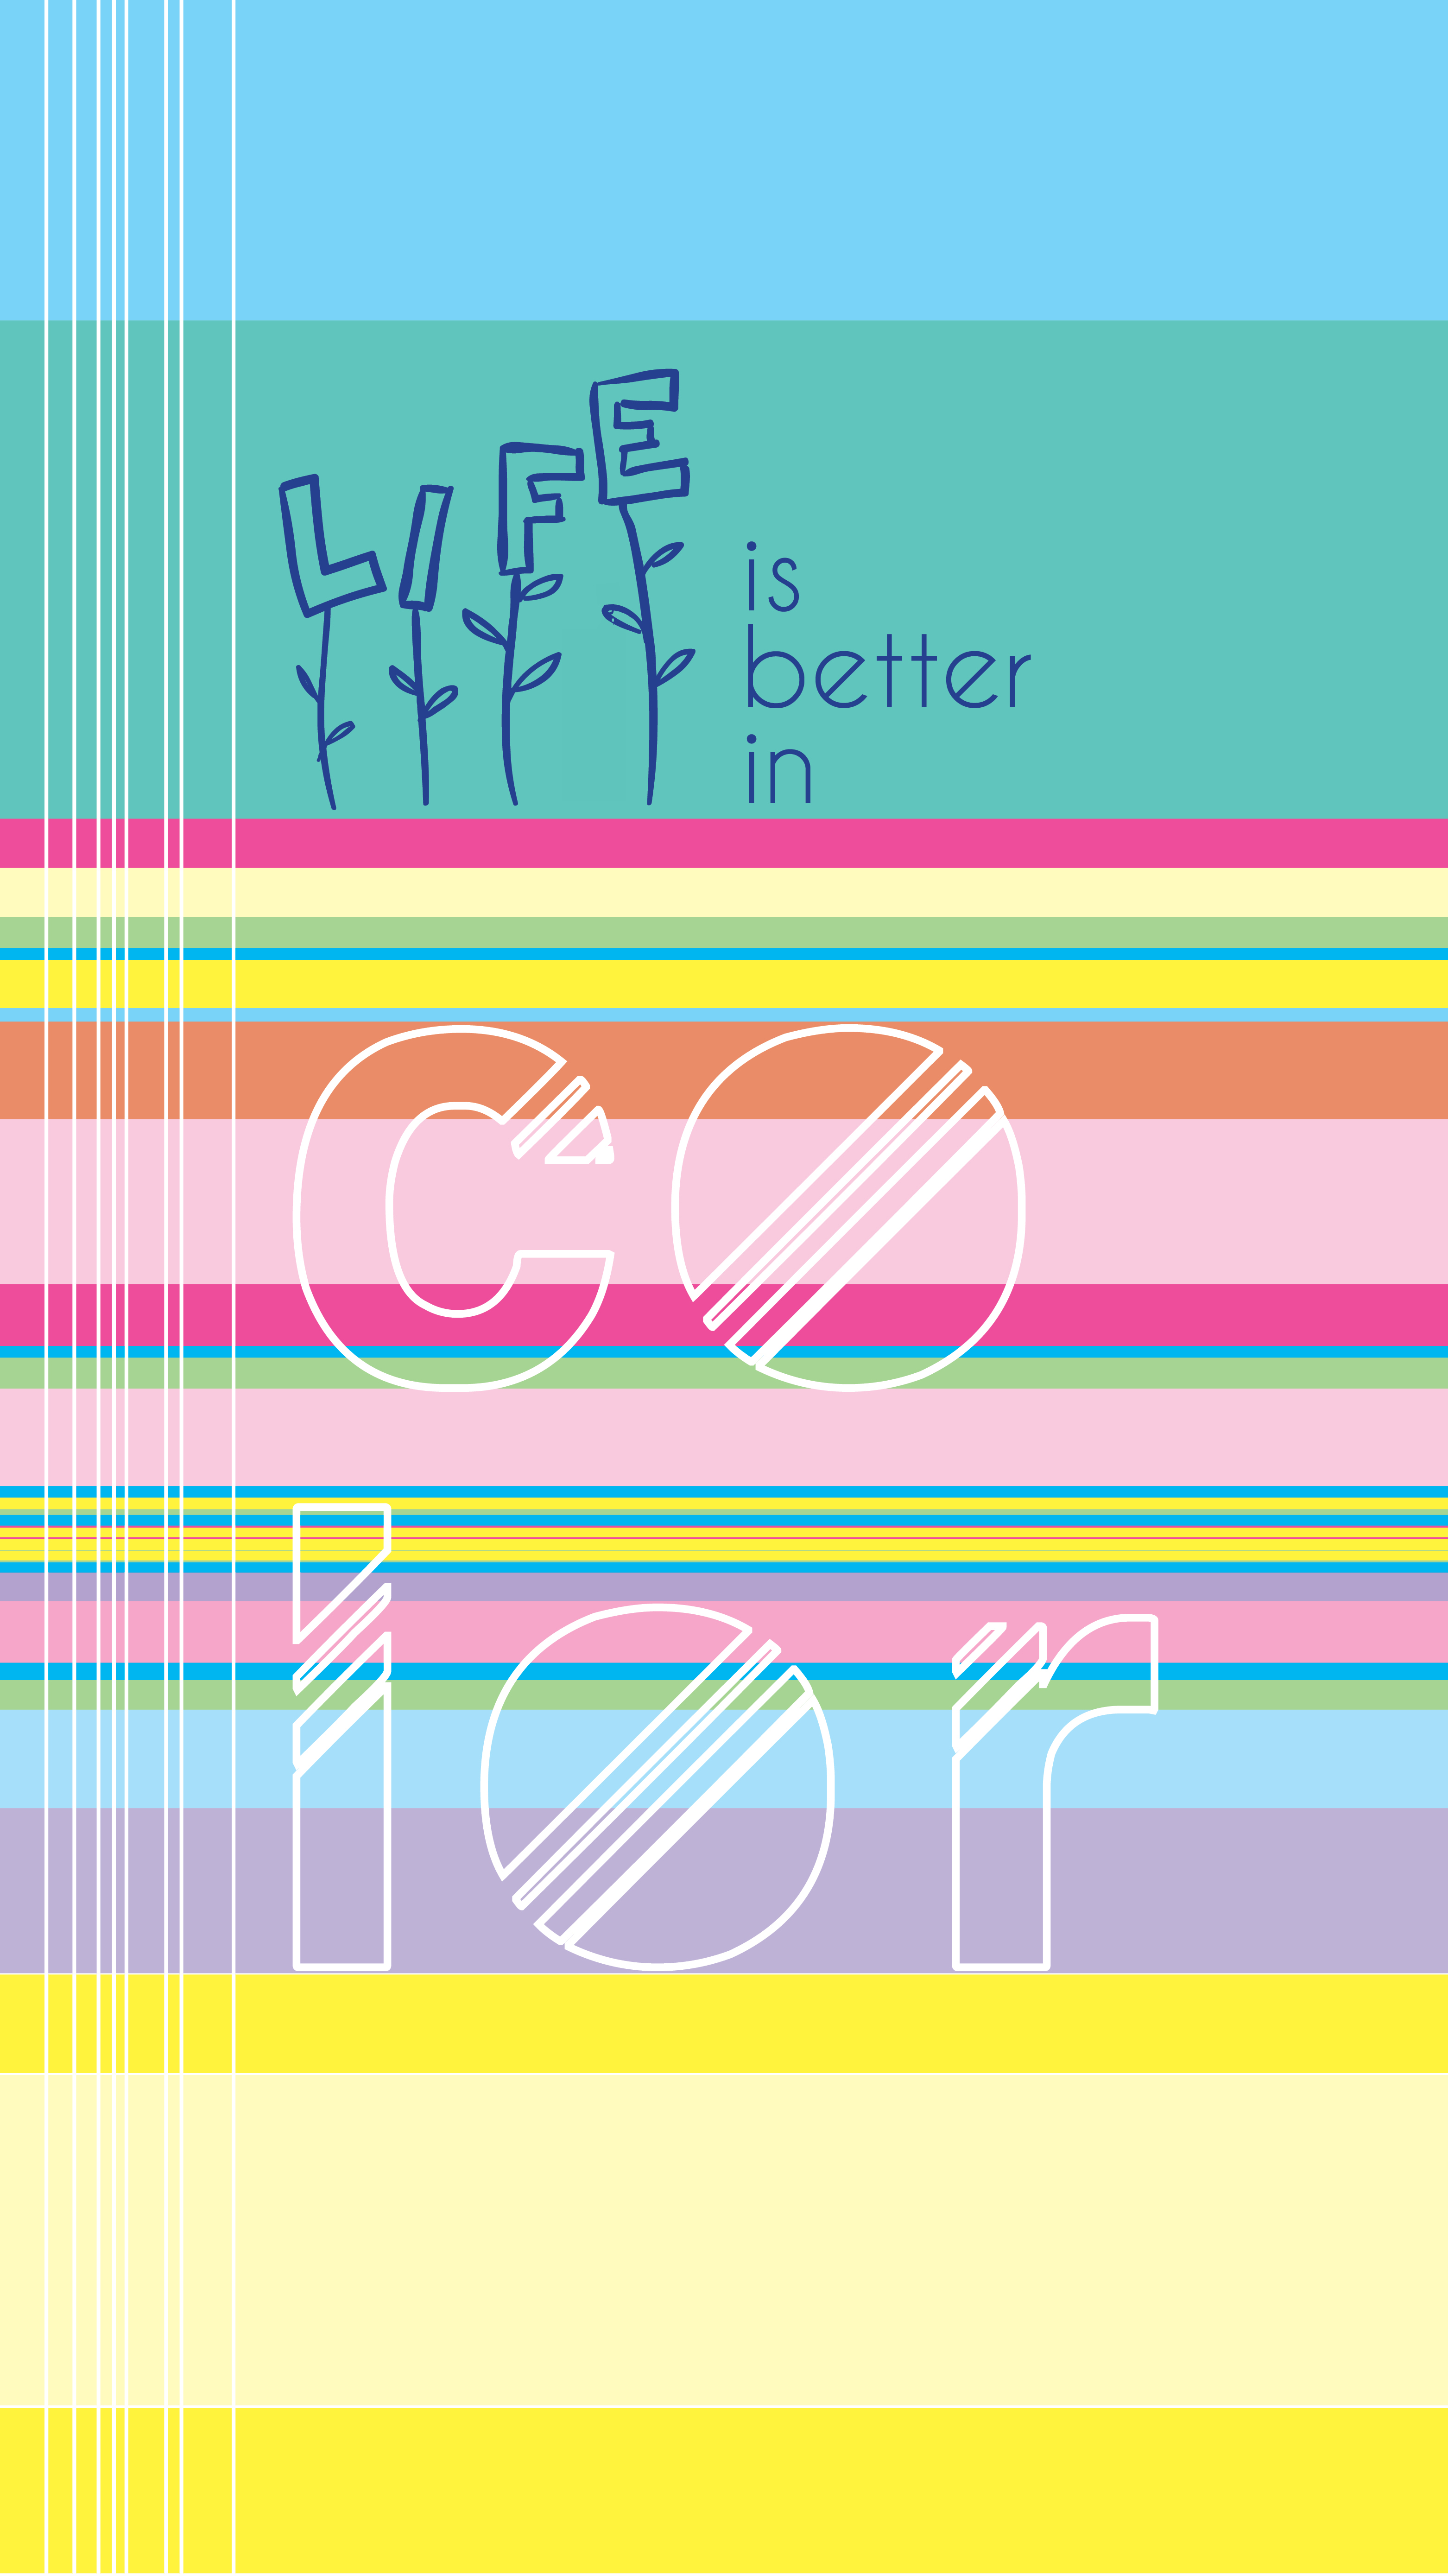 life is better in color - phonewallp